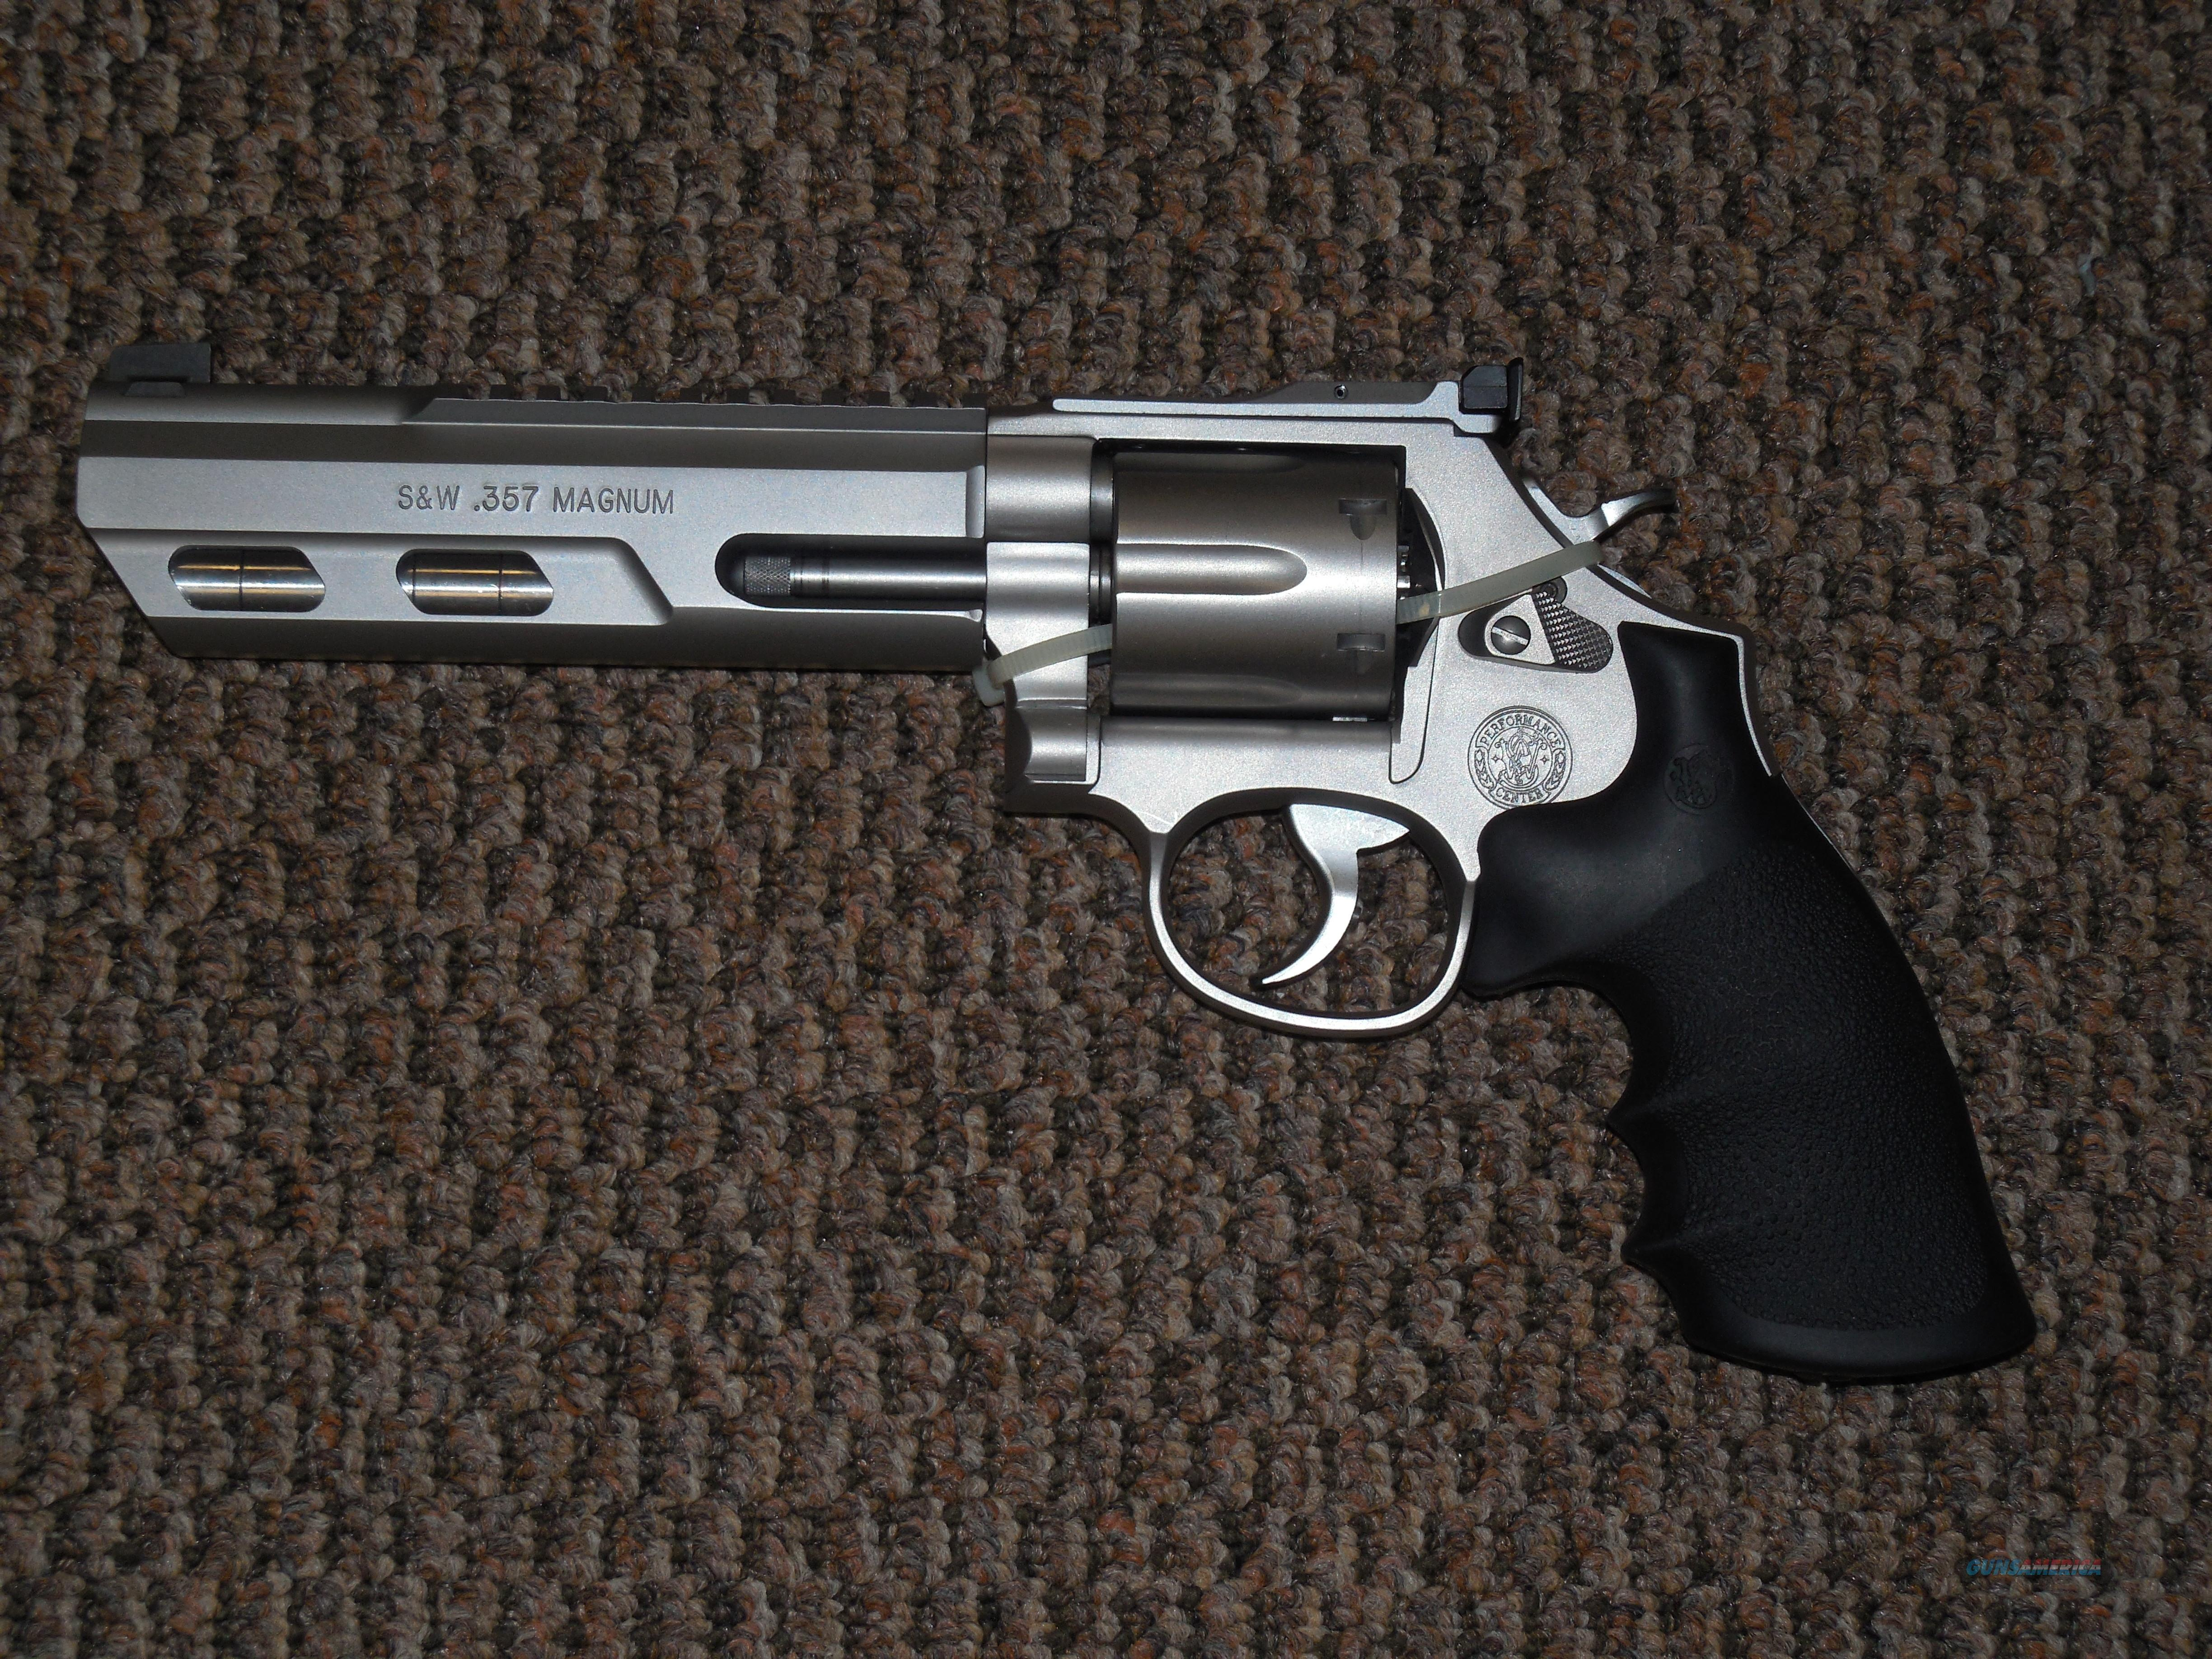 S&W MODEL 686 PREFORMANCE CENTER COMPETITOR .357 MAGNUM  Guns > Pistols > Smith & Wesson Revolvers > Performance Center